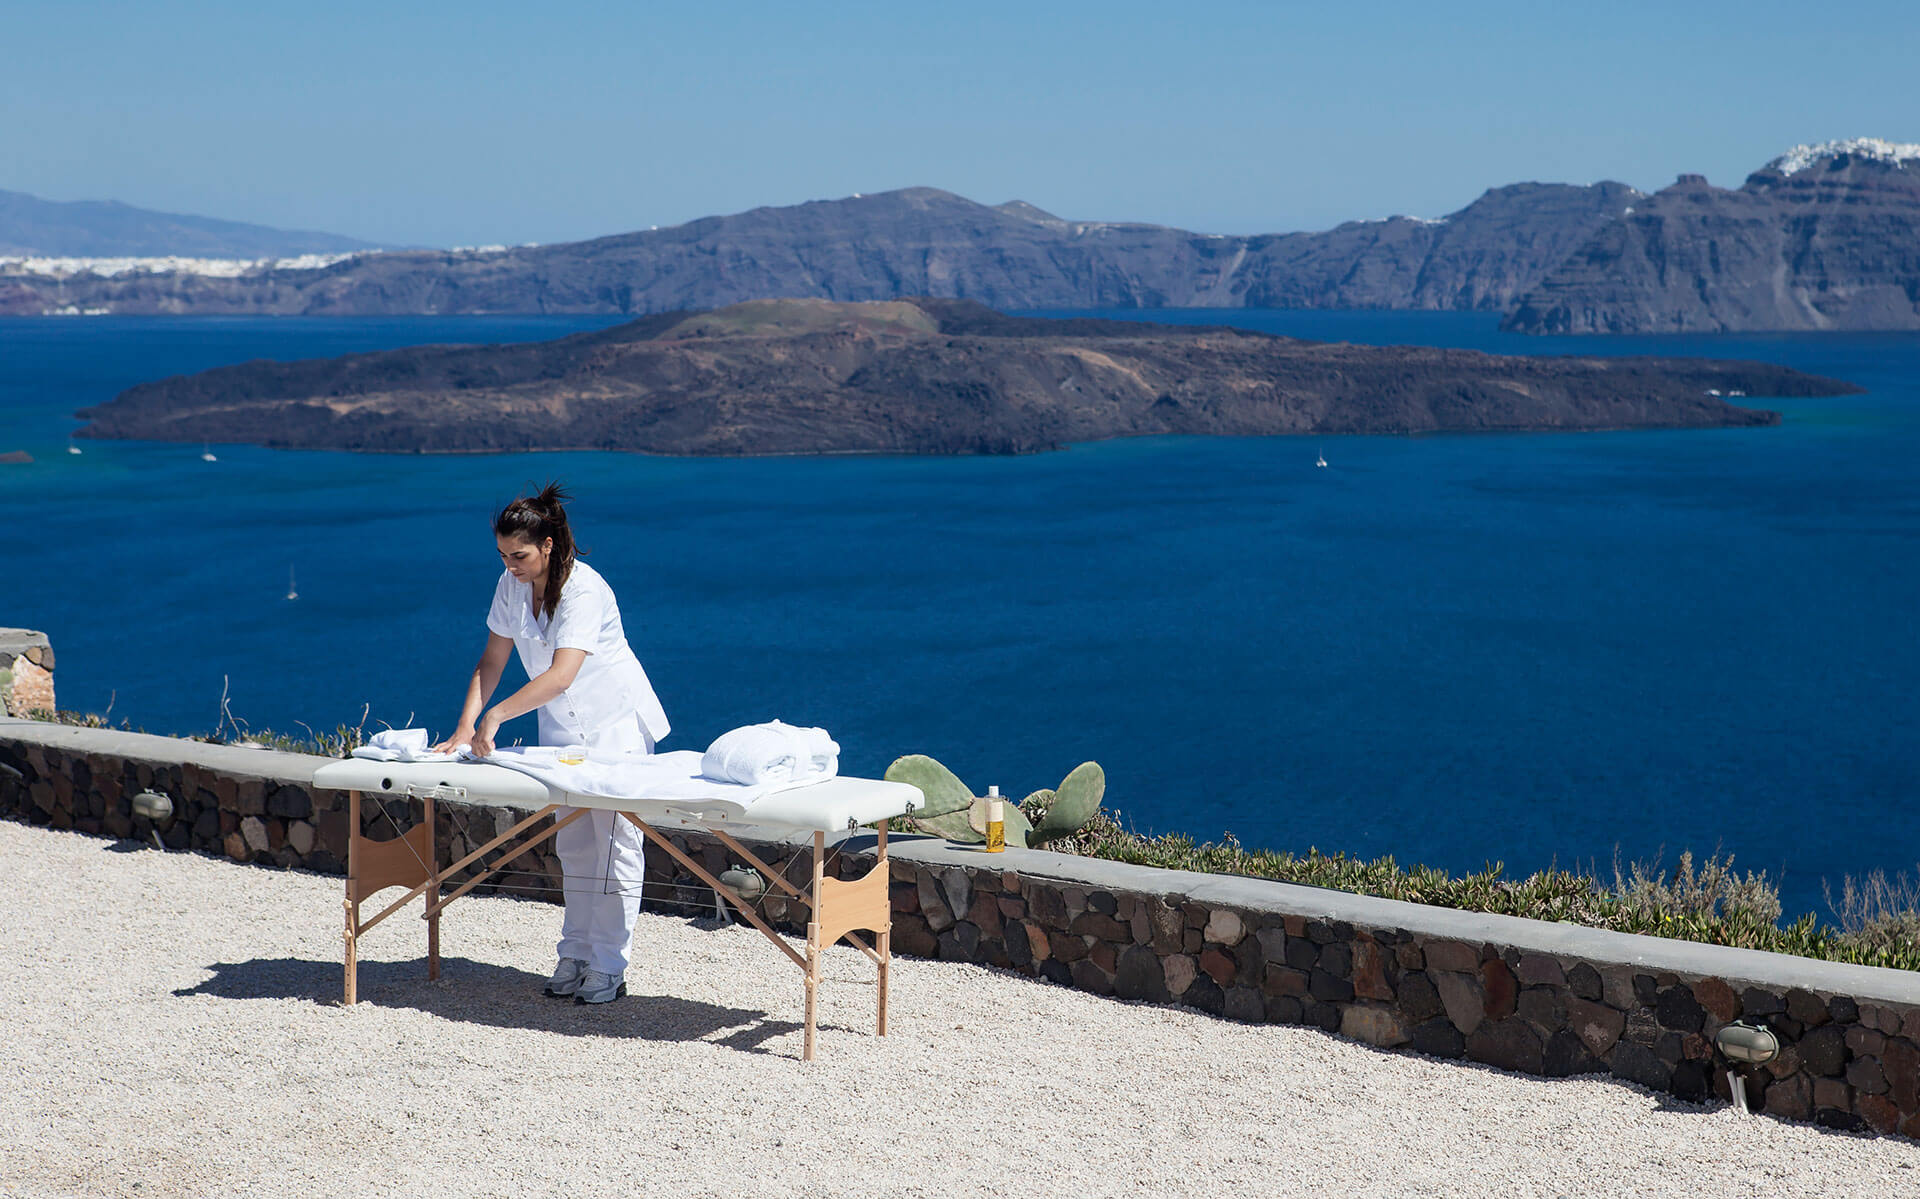 Kalestesia Suites - Spa massage treatment with caldera views